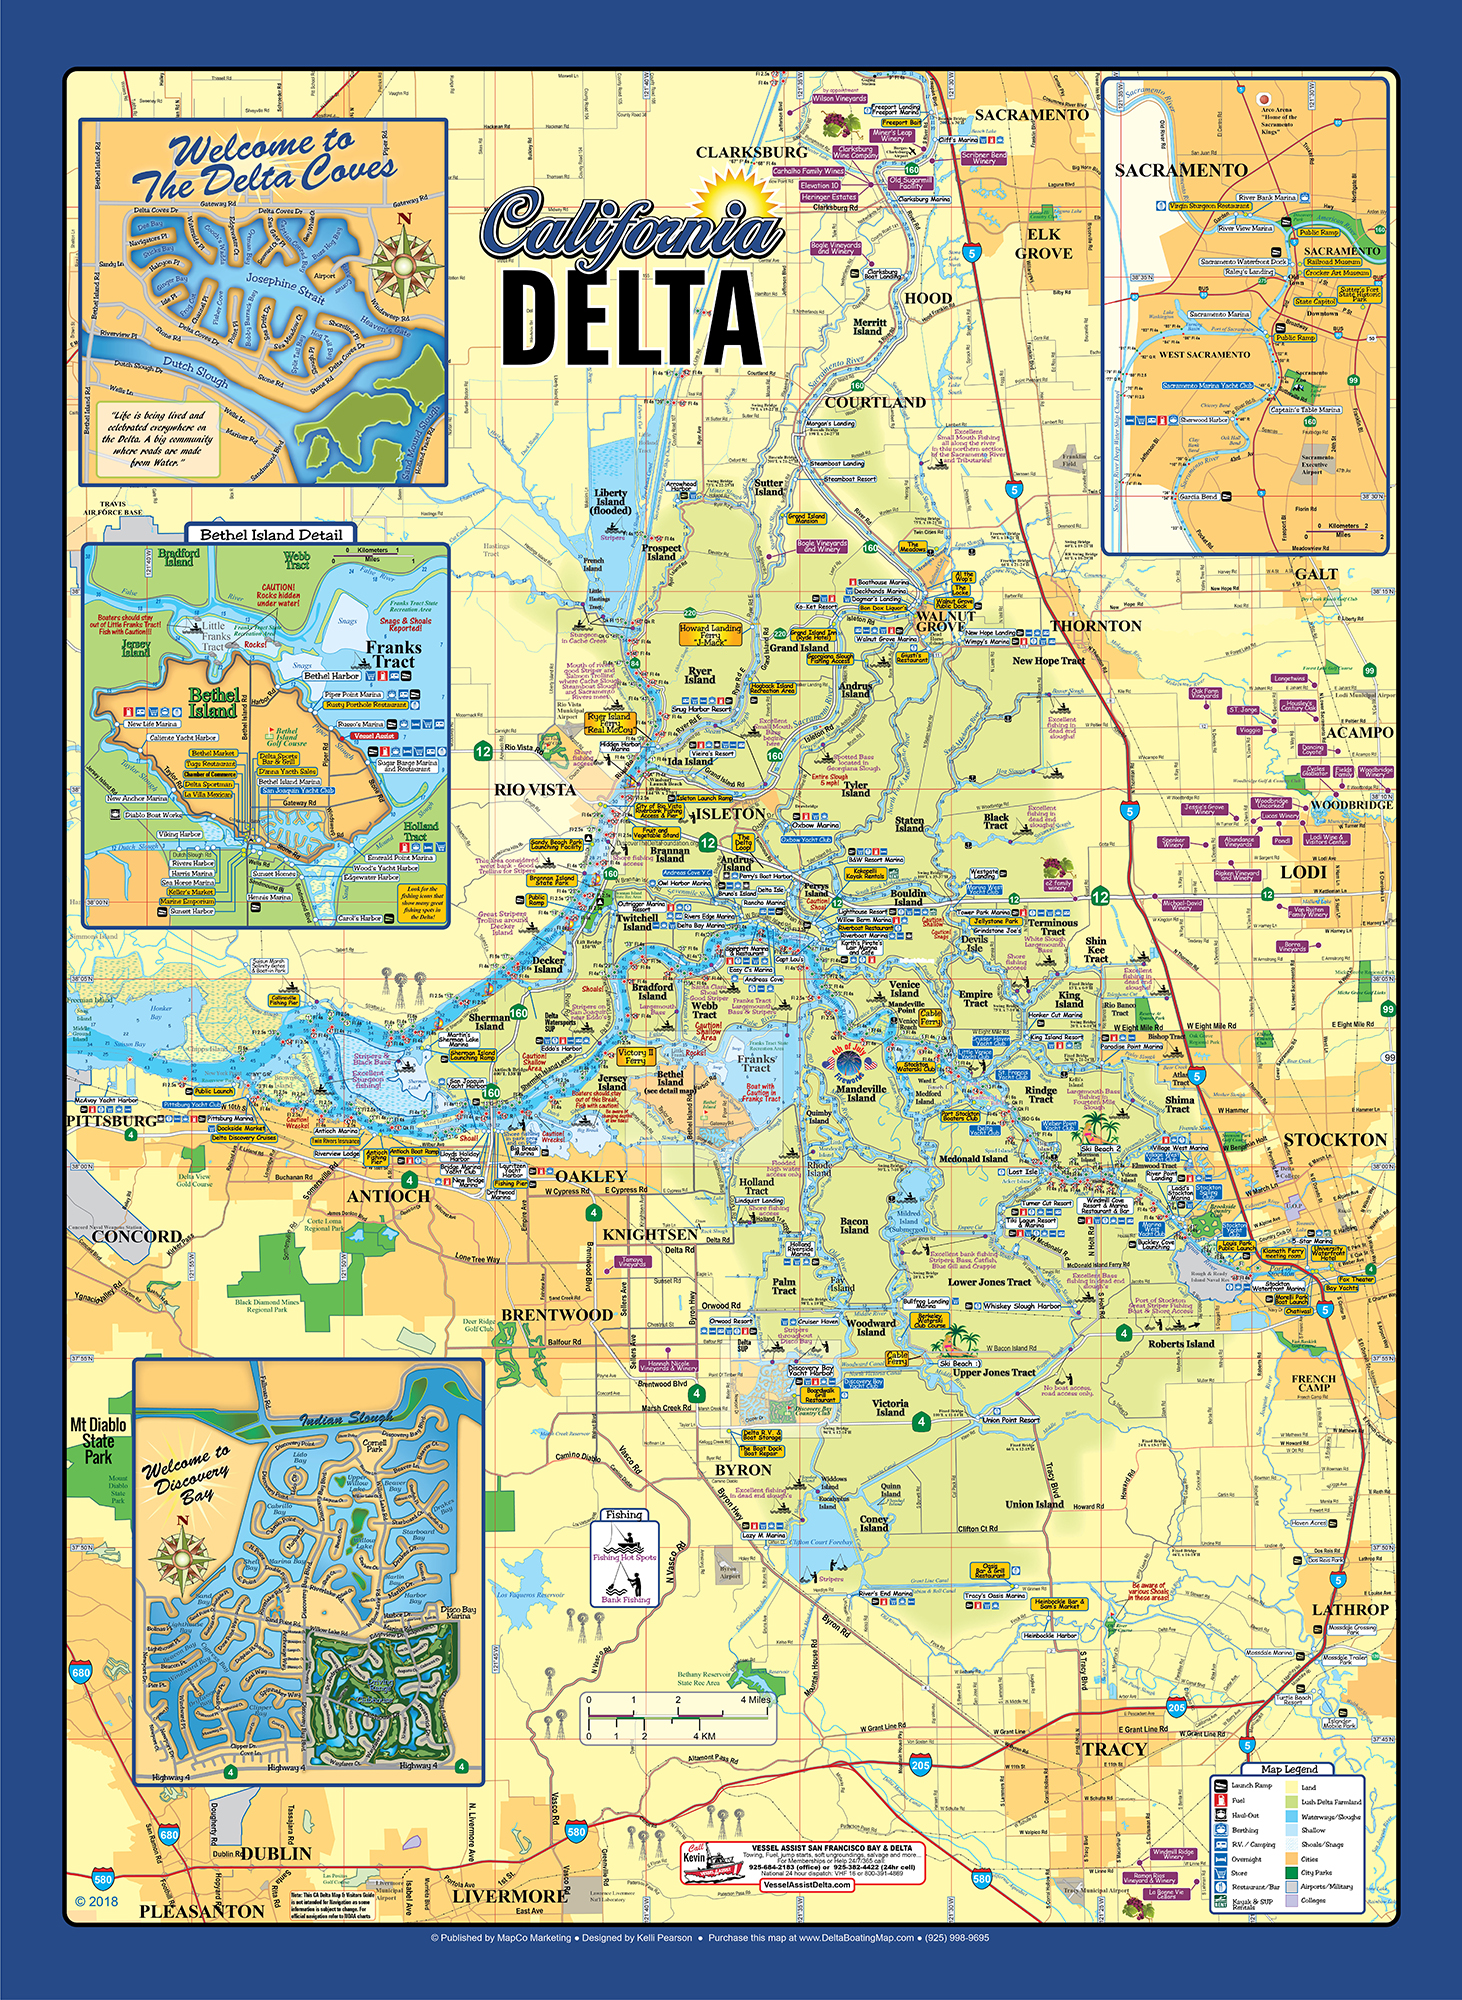 Custom_Delta_wall_map_giant-poster.jpg